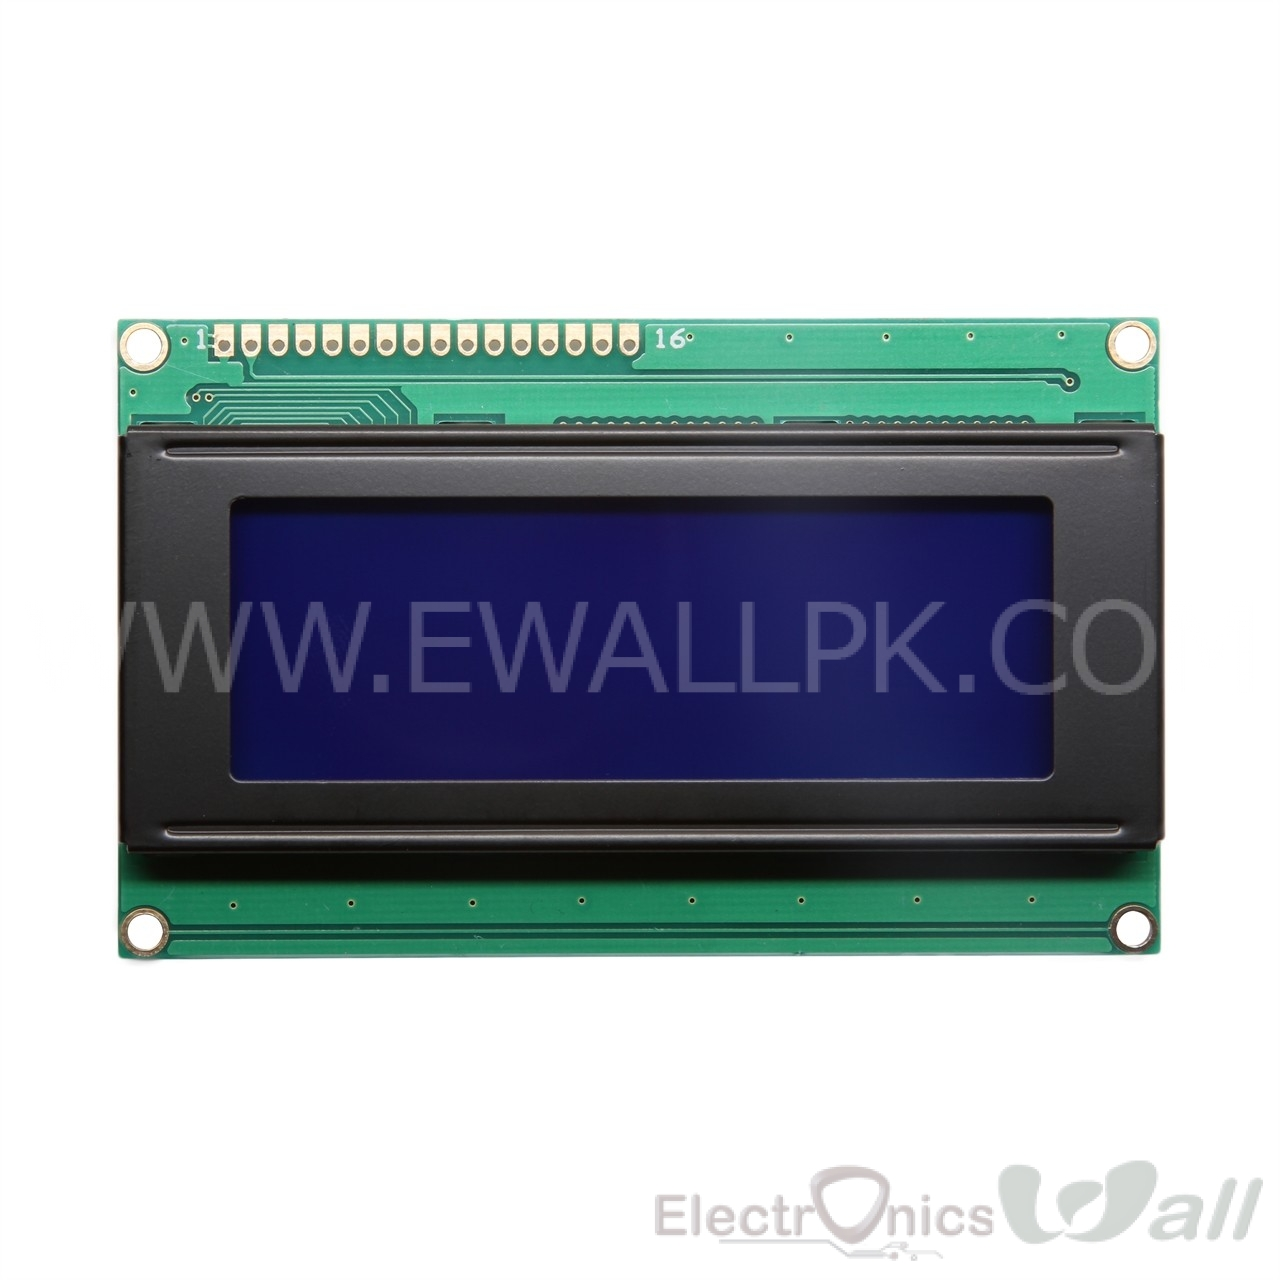 LCD Display (Blue Back-light )2004 Basic 20x4 Character